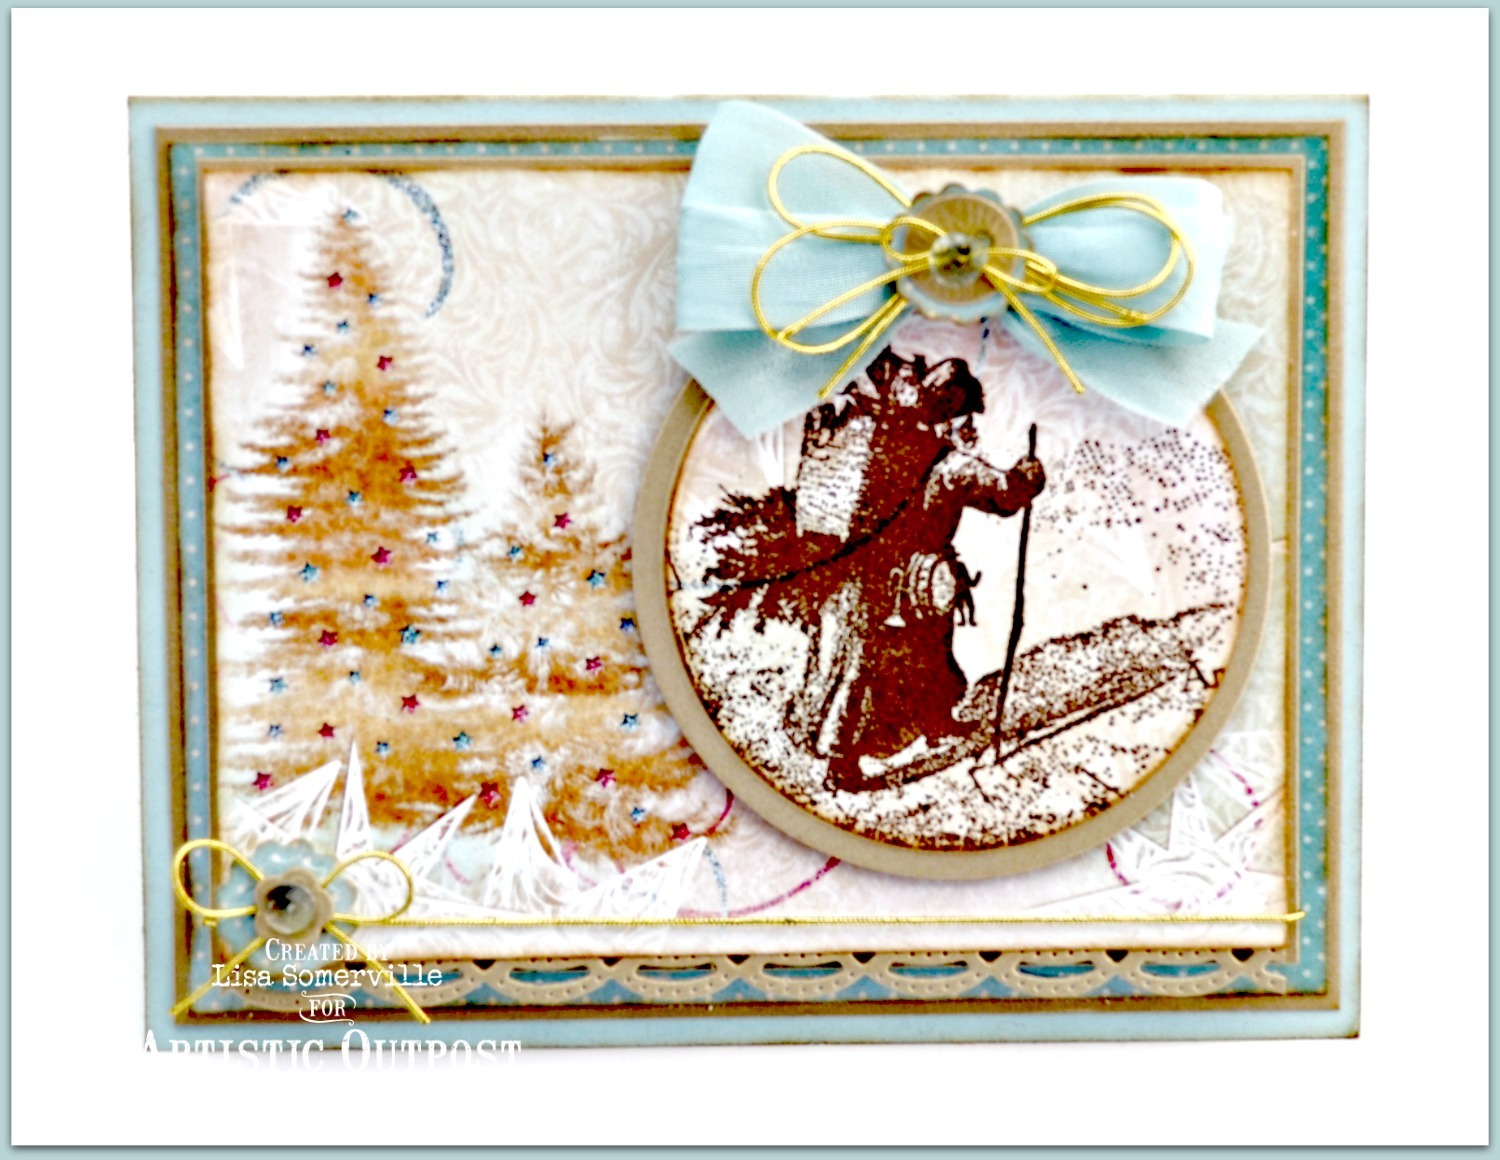 Stamps - Artistic Outpost Snowy Woods, Our Daily Bread Designs Custom Beautiful Borders Dies/Circle Ornaments Dies/Matting Circles Dies/Peaceful Poinsettias Die, ODBD Christmas Paper Collection 2014